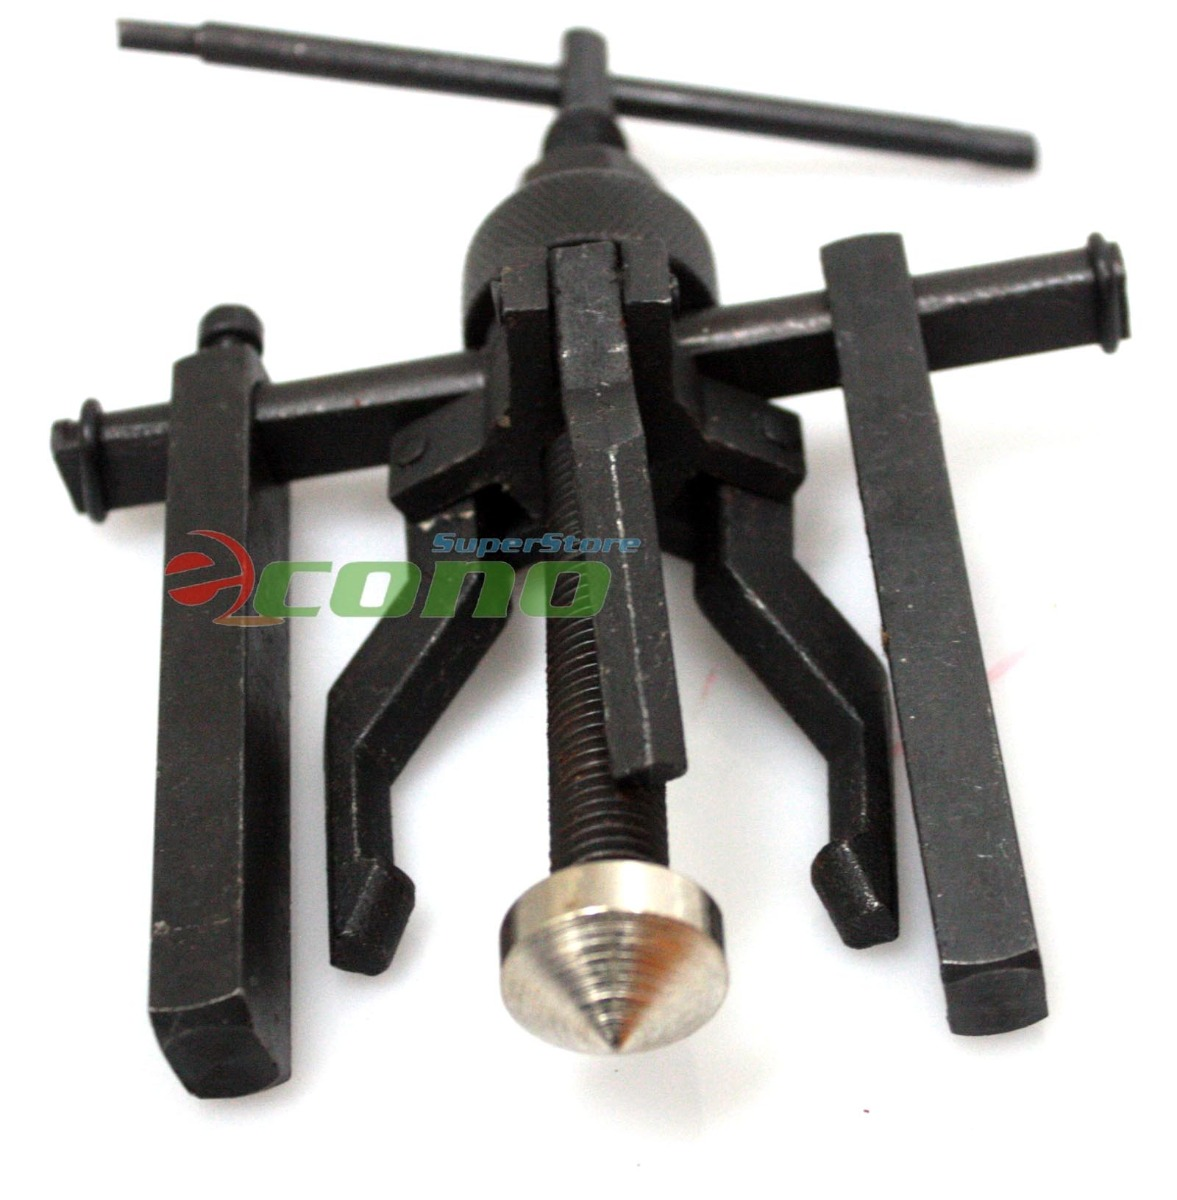 Bearing Puller Types : Jaw pilot bearing puller small motorcycle auto